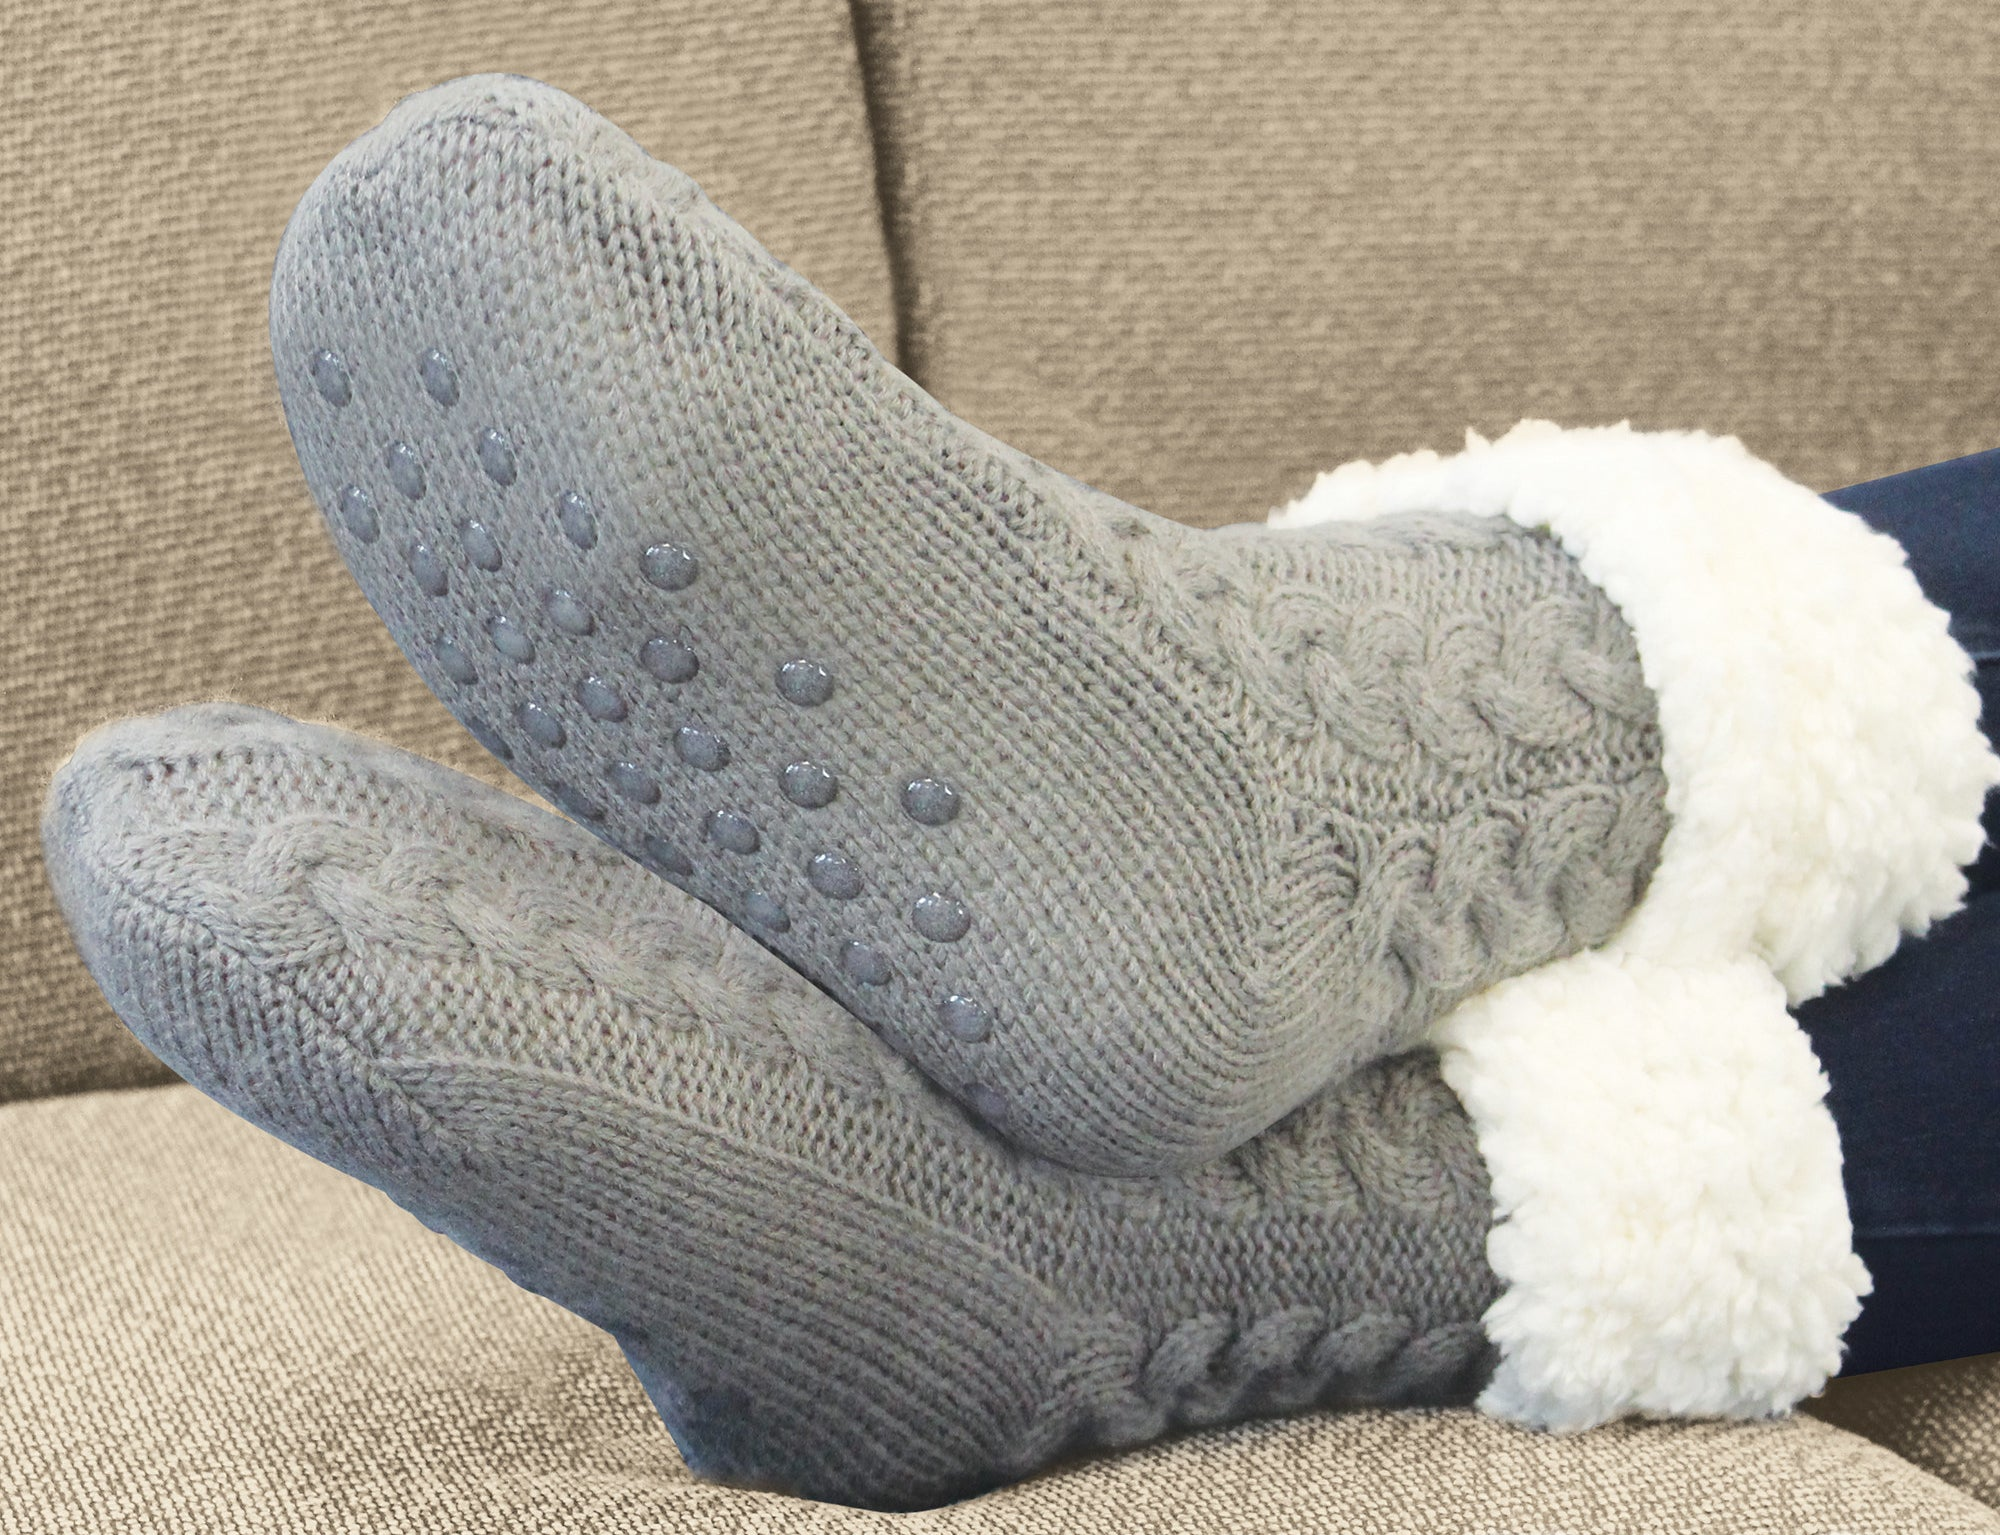 person wearing grey huggle socks while lounging on the couch